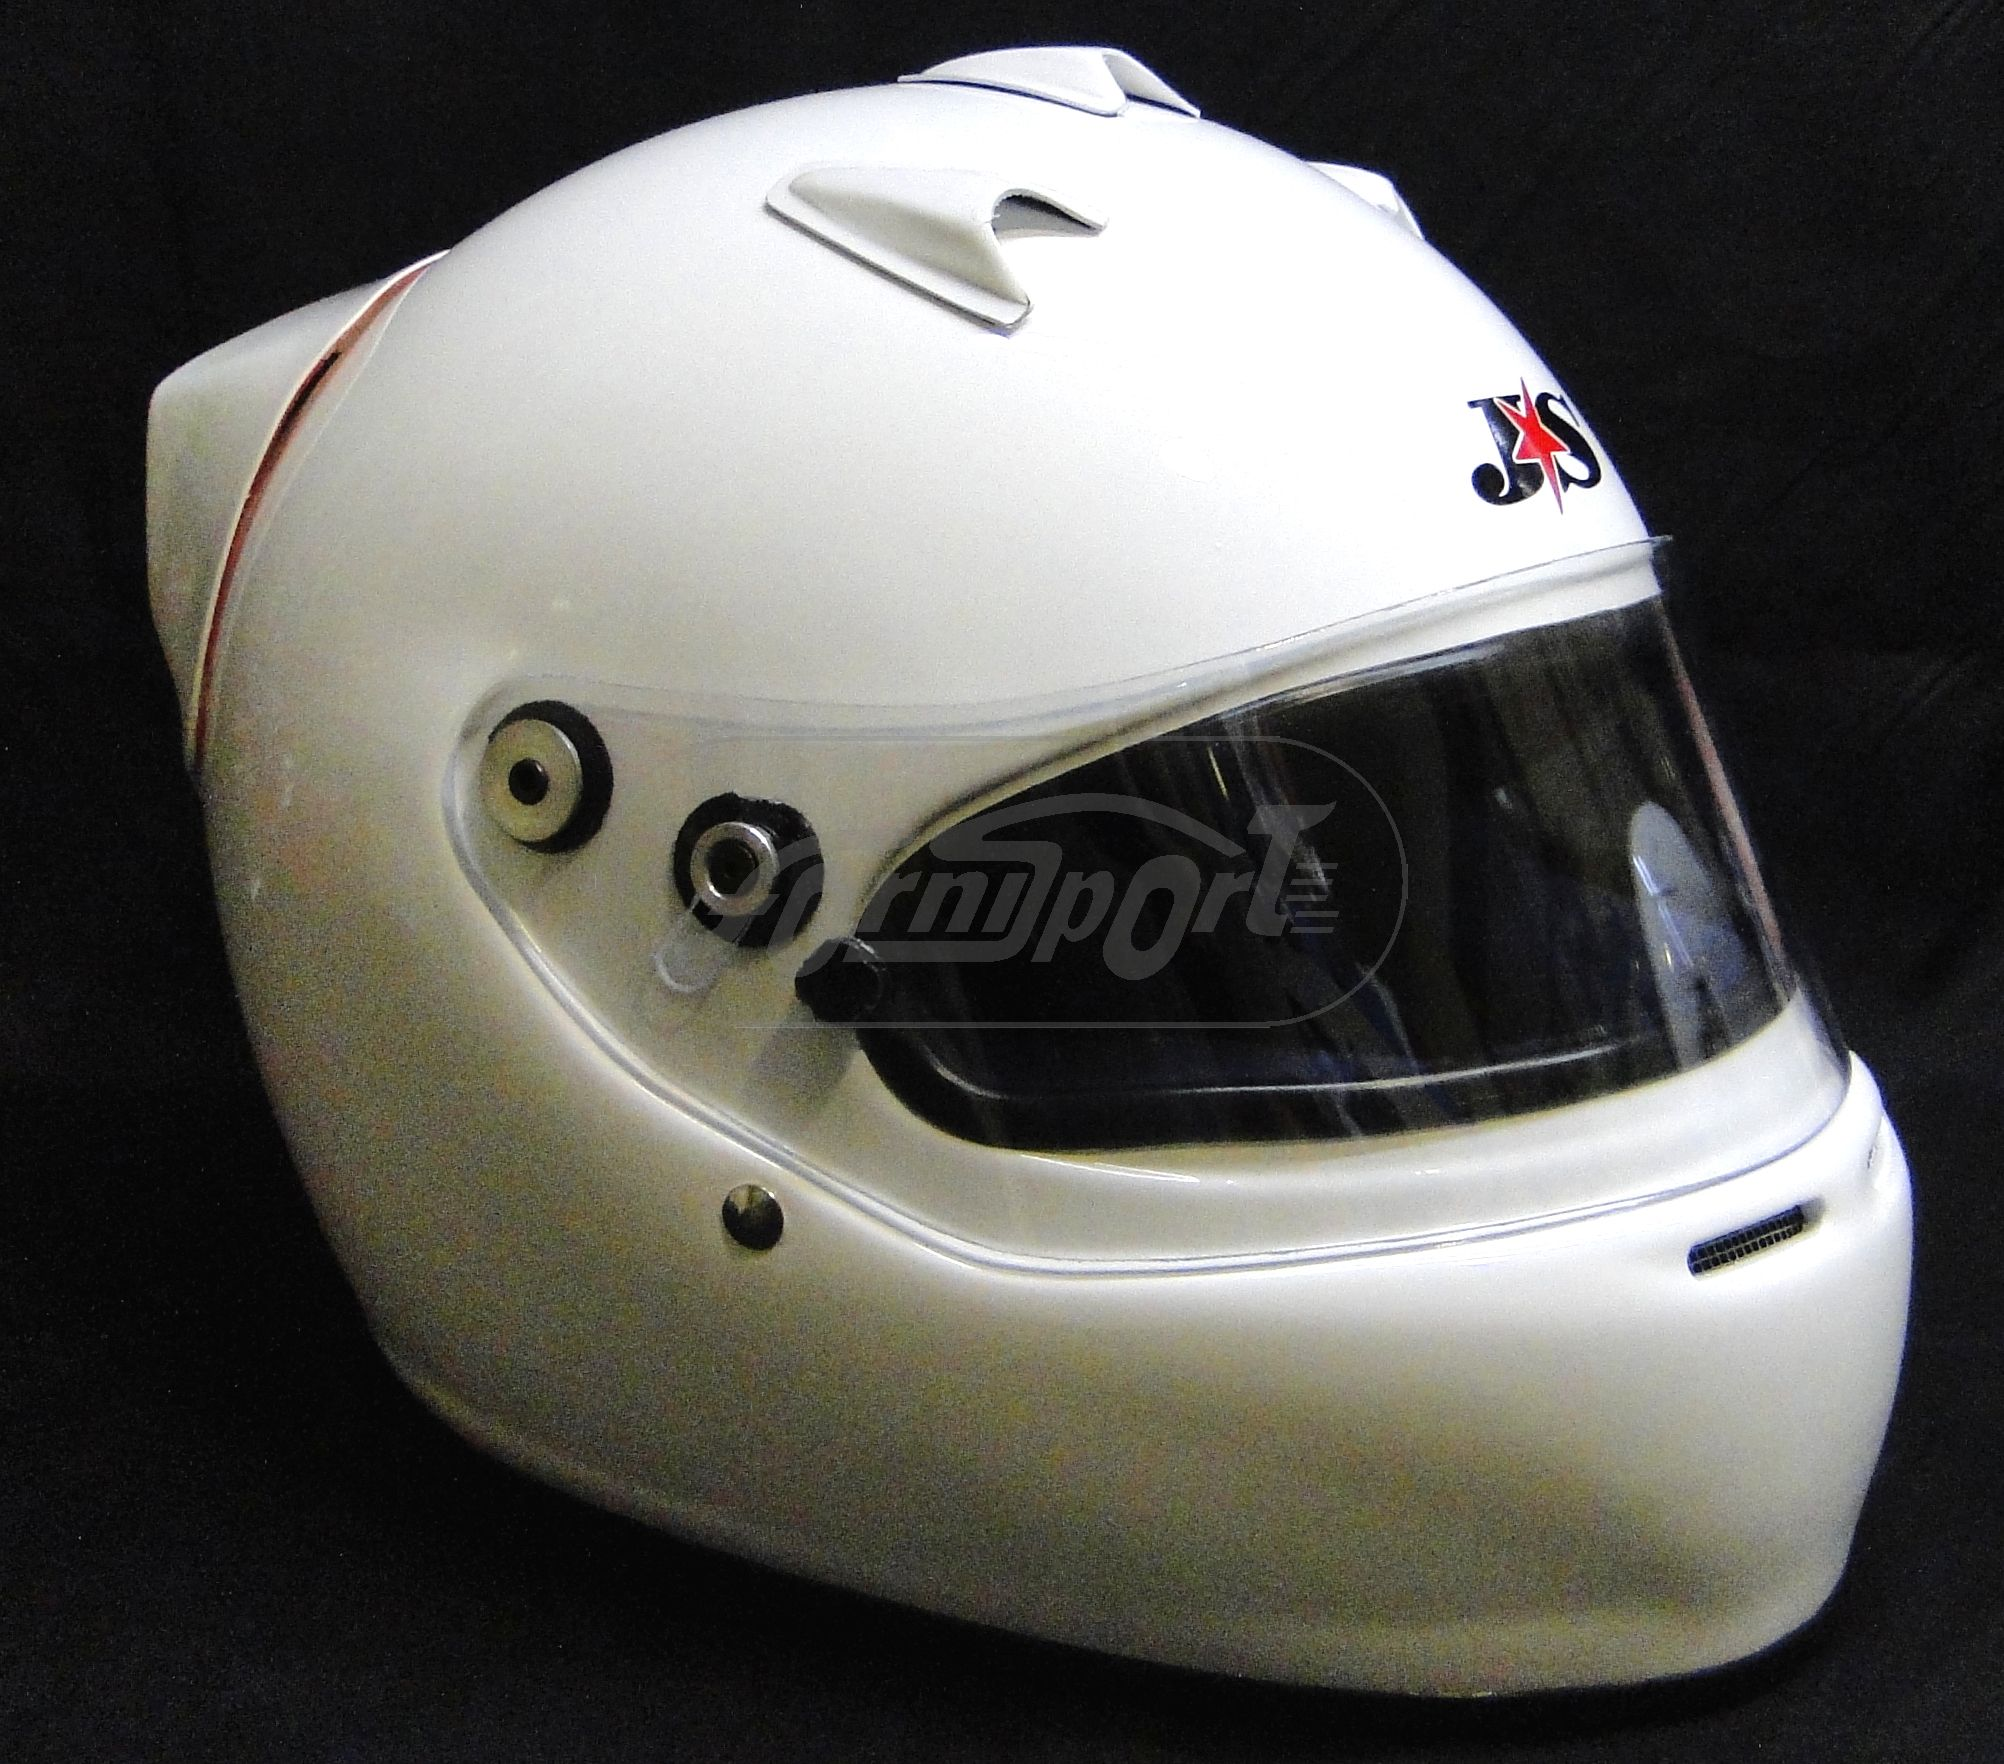 Casco Integral  J*S Racing  T 58 A 5 Con  Aleron